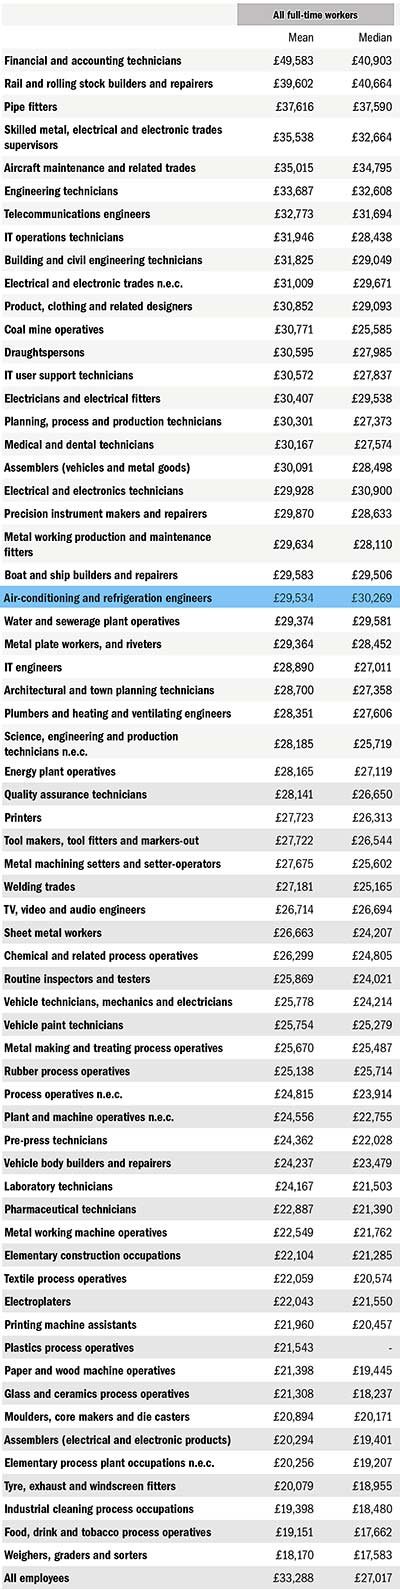 EngUK_Report_2015_wages